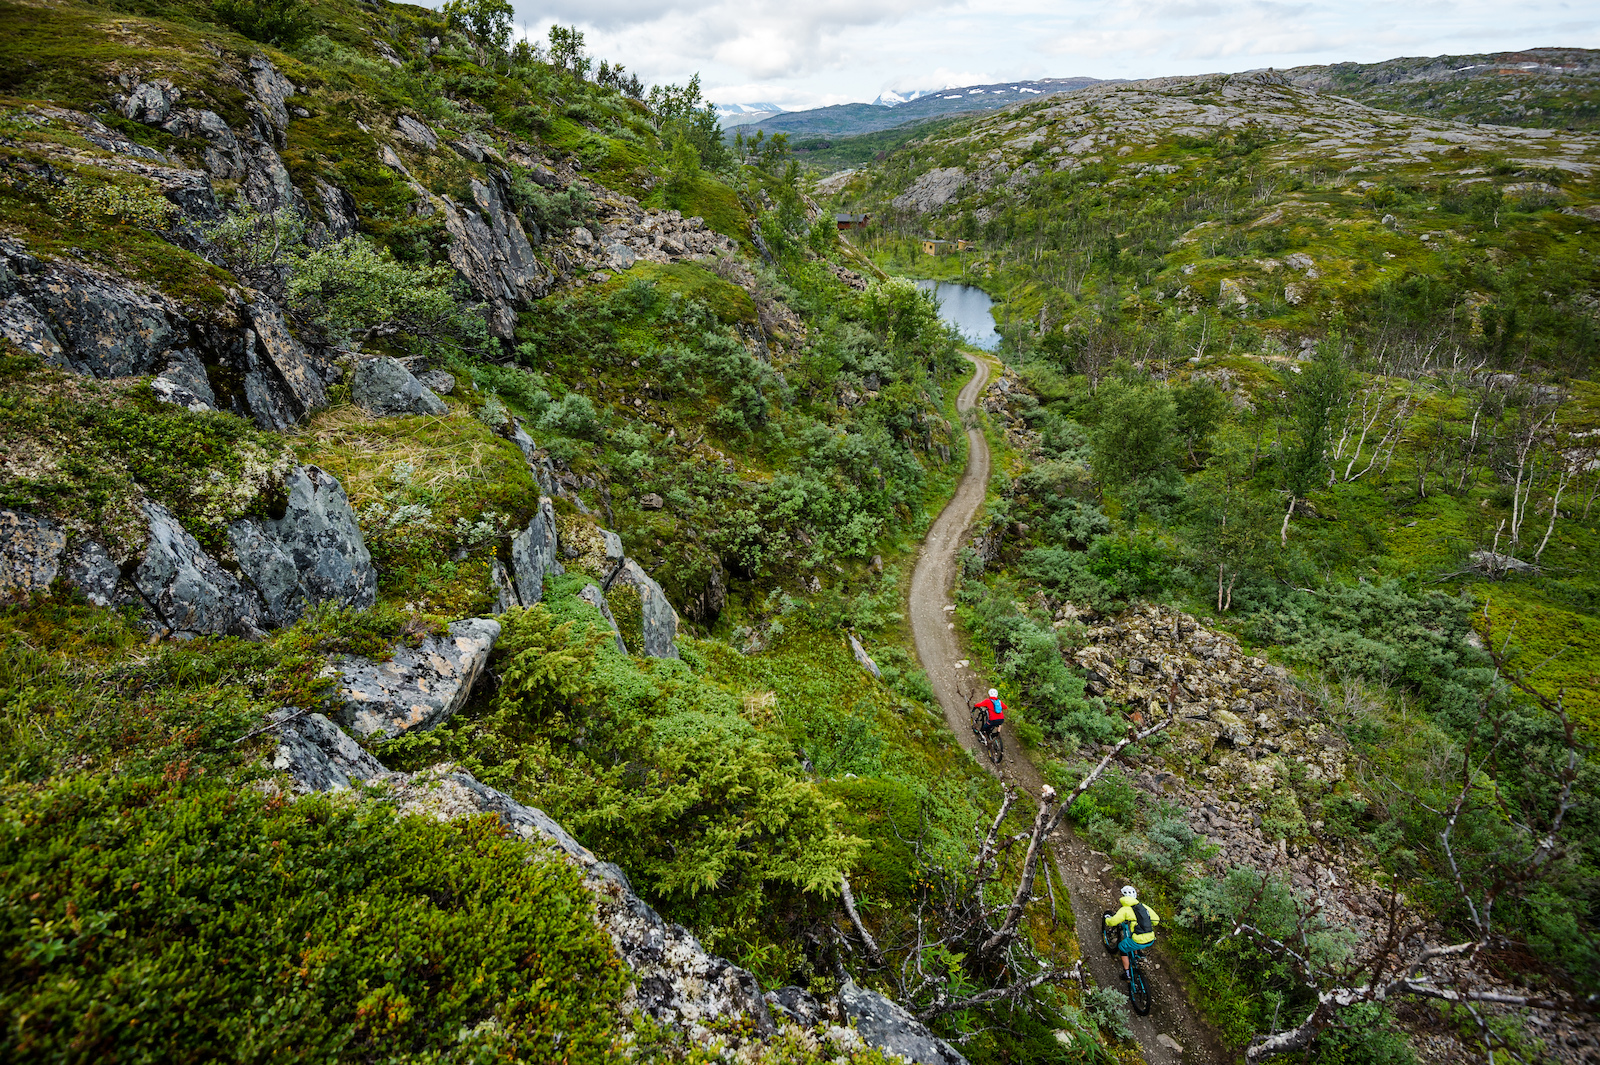 Mikael af Ekenstam and Joey Schulser mountain biking in Bj rnefjell Norway.